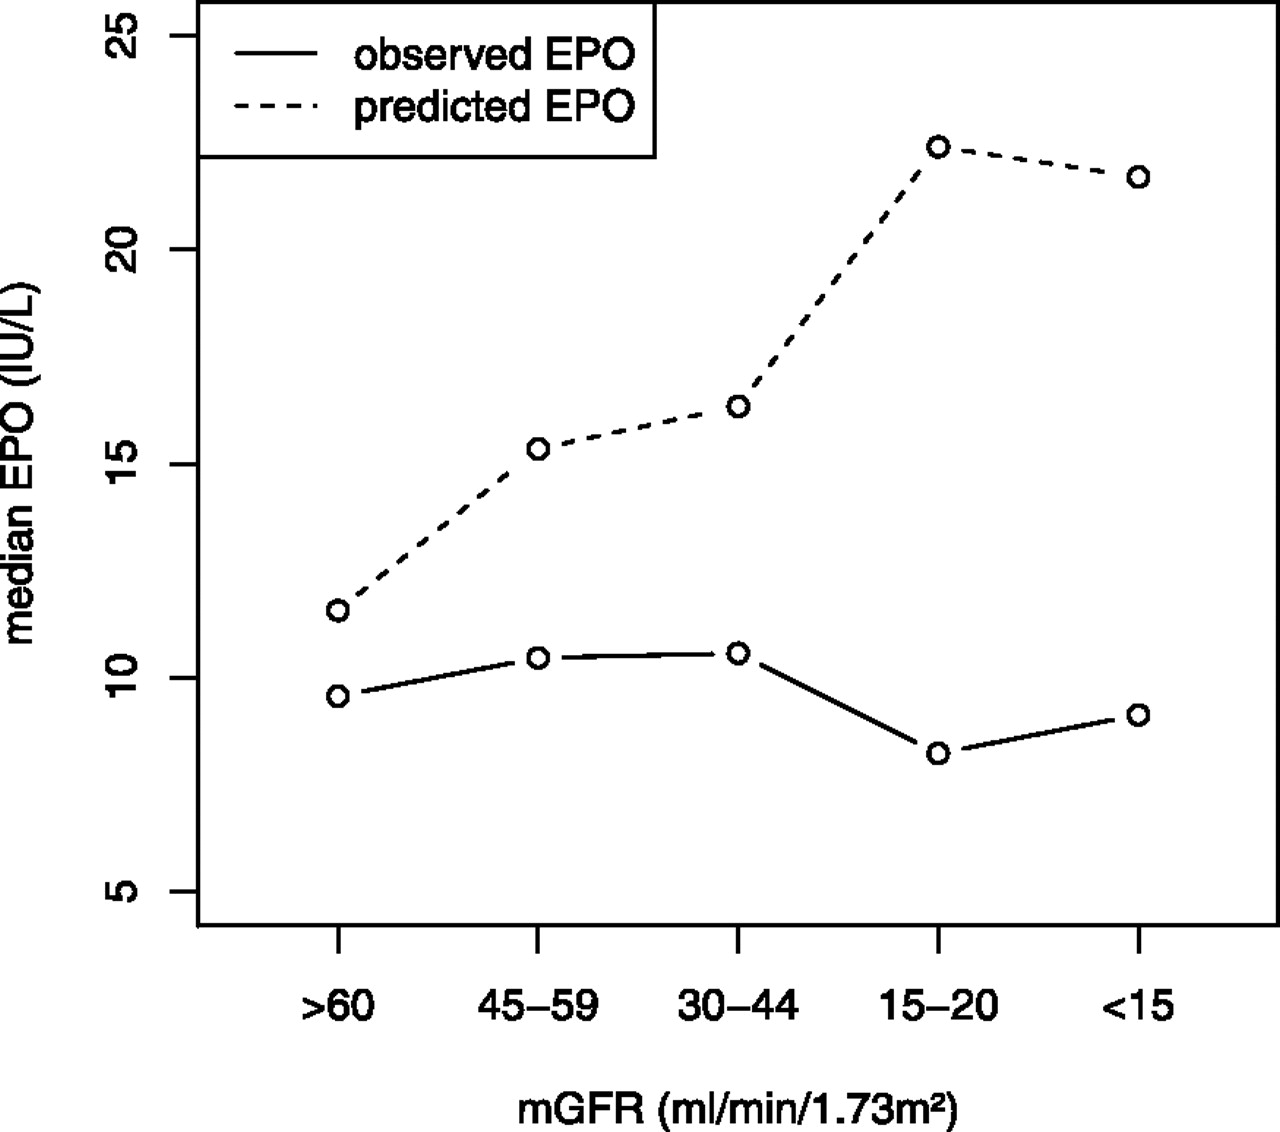 Timing And Determinants Of Erythropoietin Deficiency In Chronic Kidney Disease American Society Of Nephrology